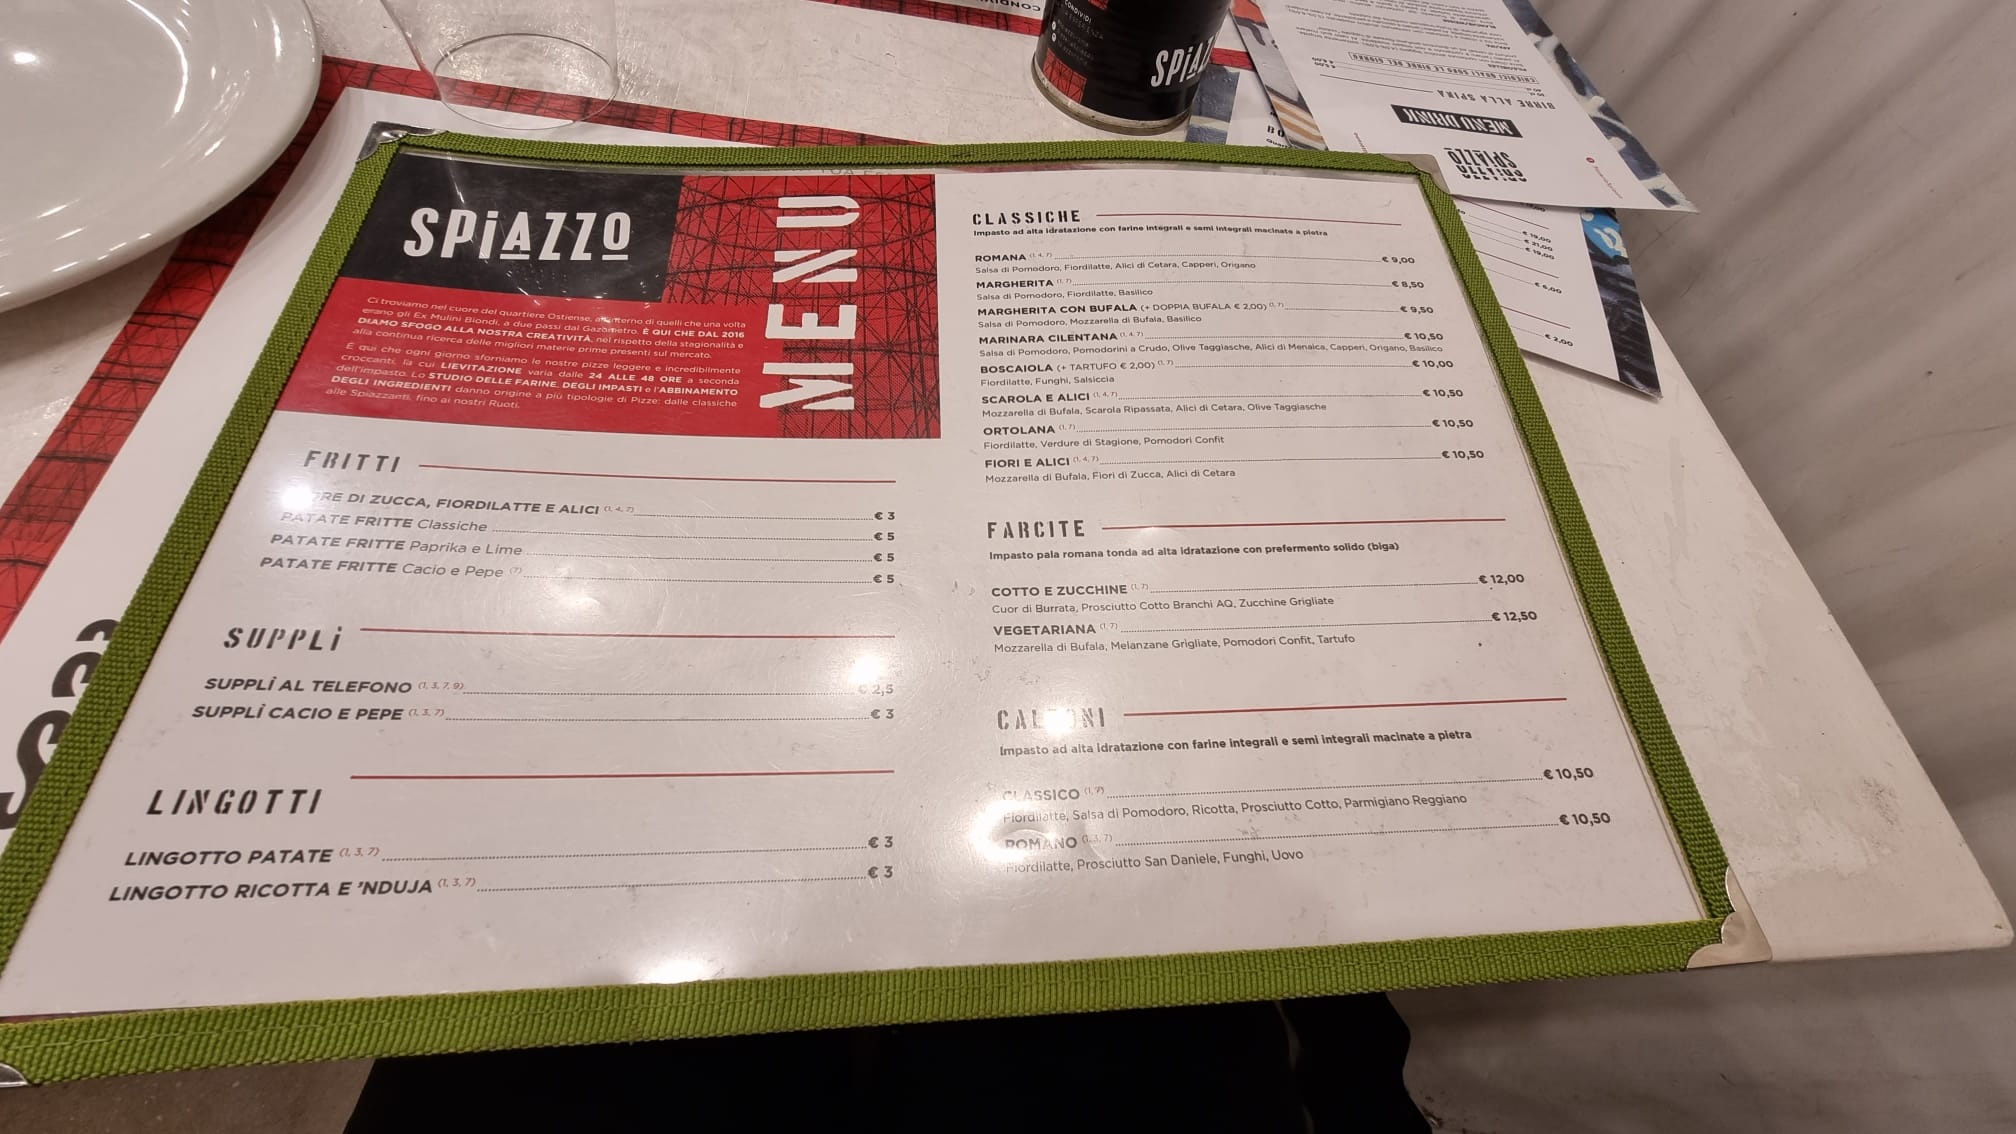 Spiazzo Roma